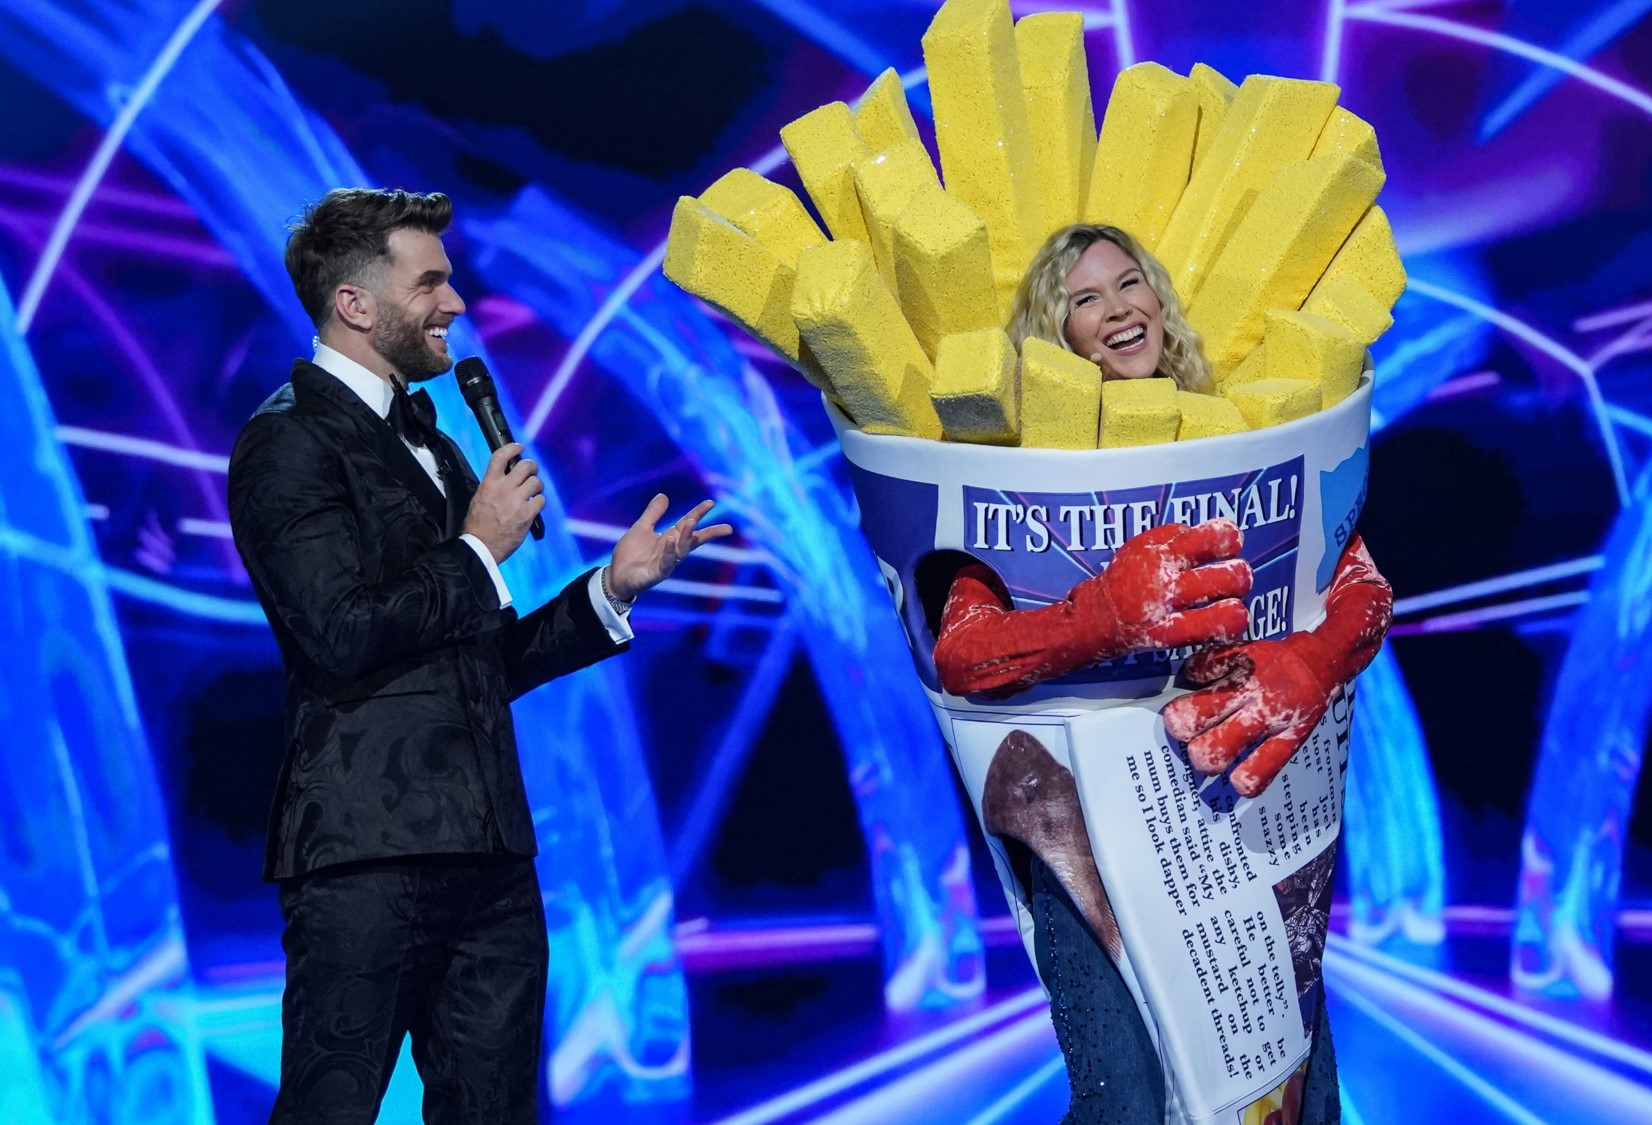 Image from an The Masked Singer